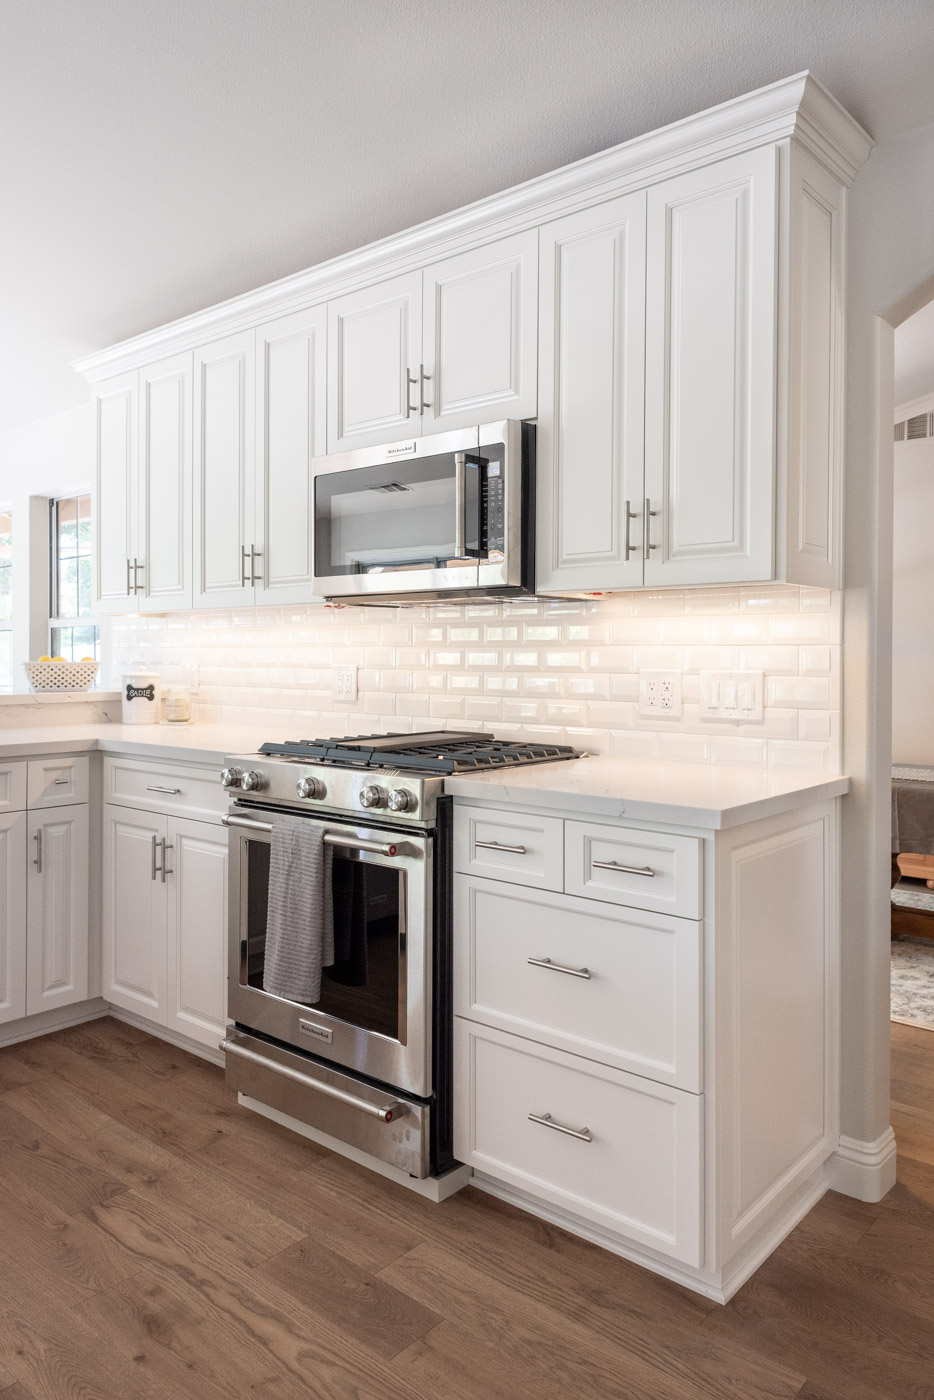 Modern Farmhouse Cottage Custom Kitchen And Bathroom Cabinets In Templeton California Sligh Cabinets Inc